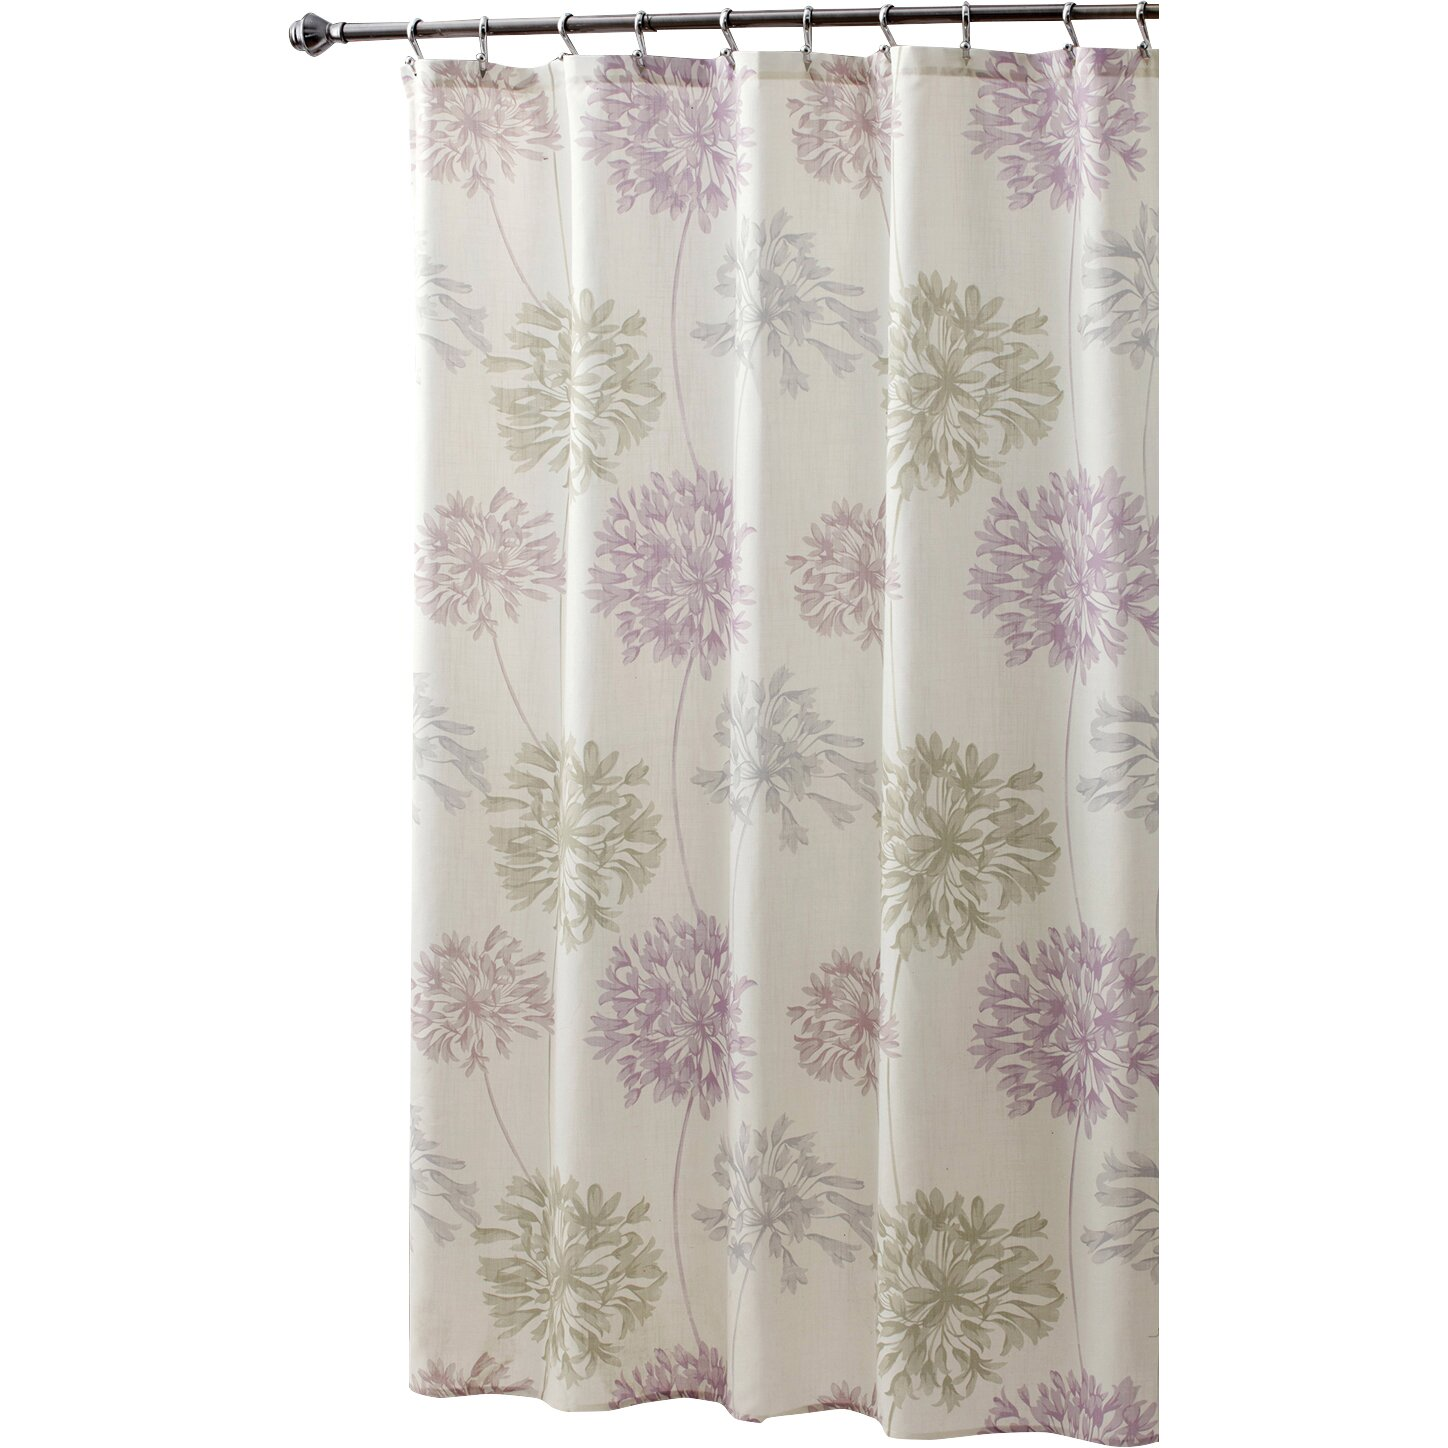 Croscill Dandelion Shower Curtain Amp Reviews